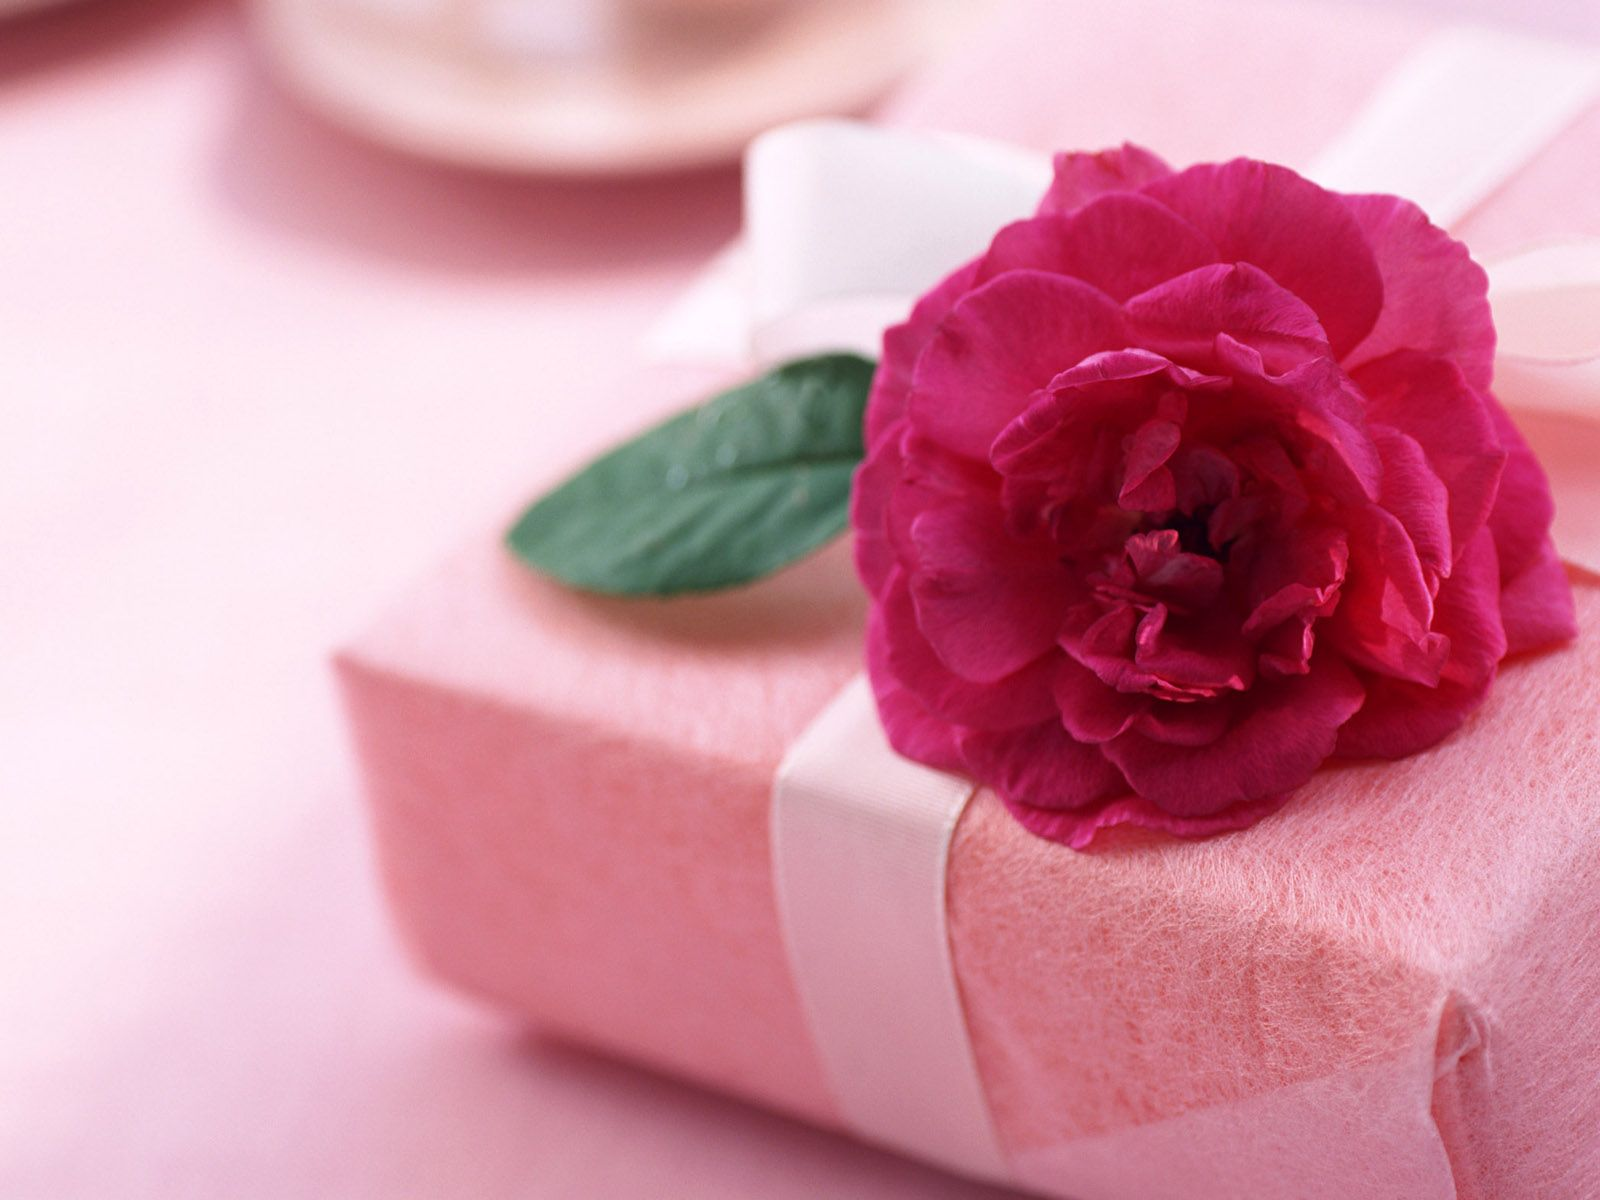 A Pretty Pink Gift Awaits You